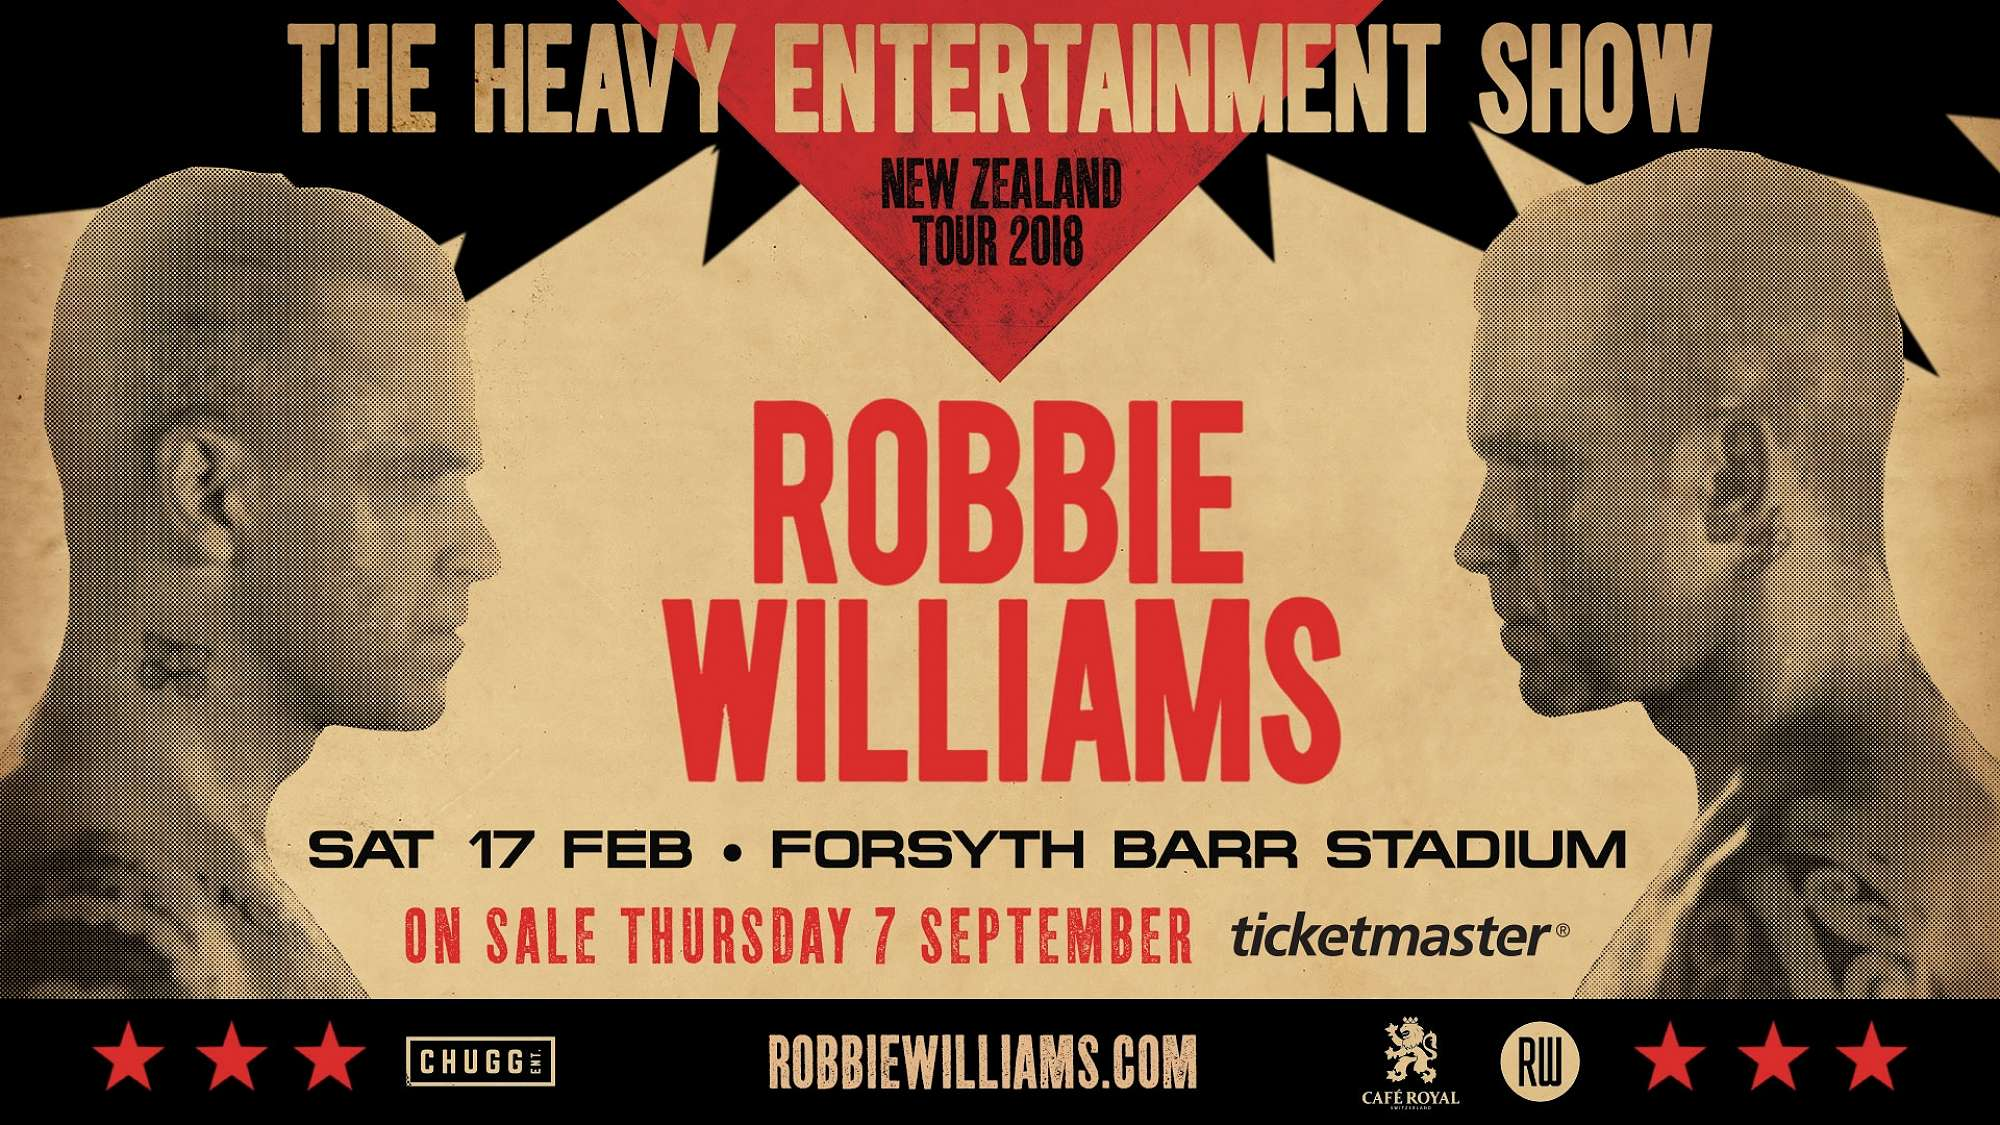 Robbie Williams to play at Forsyth Barr Stadium!